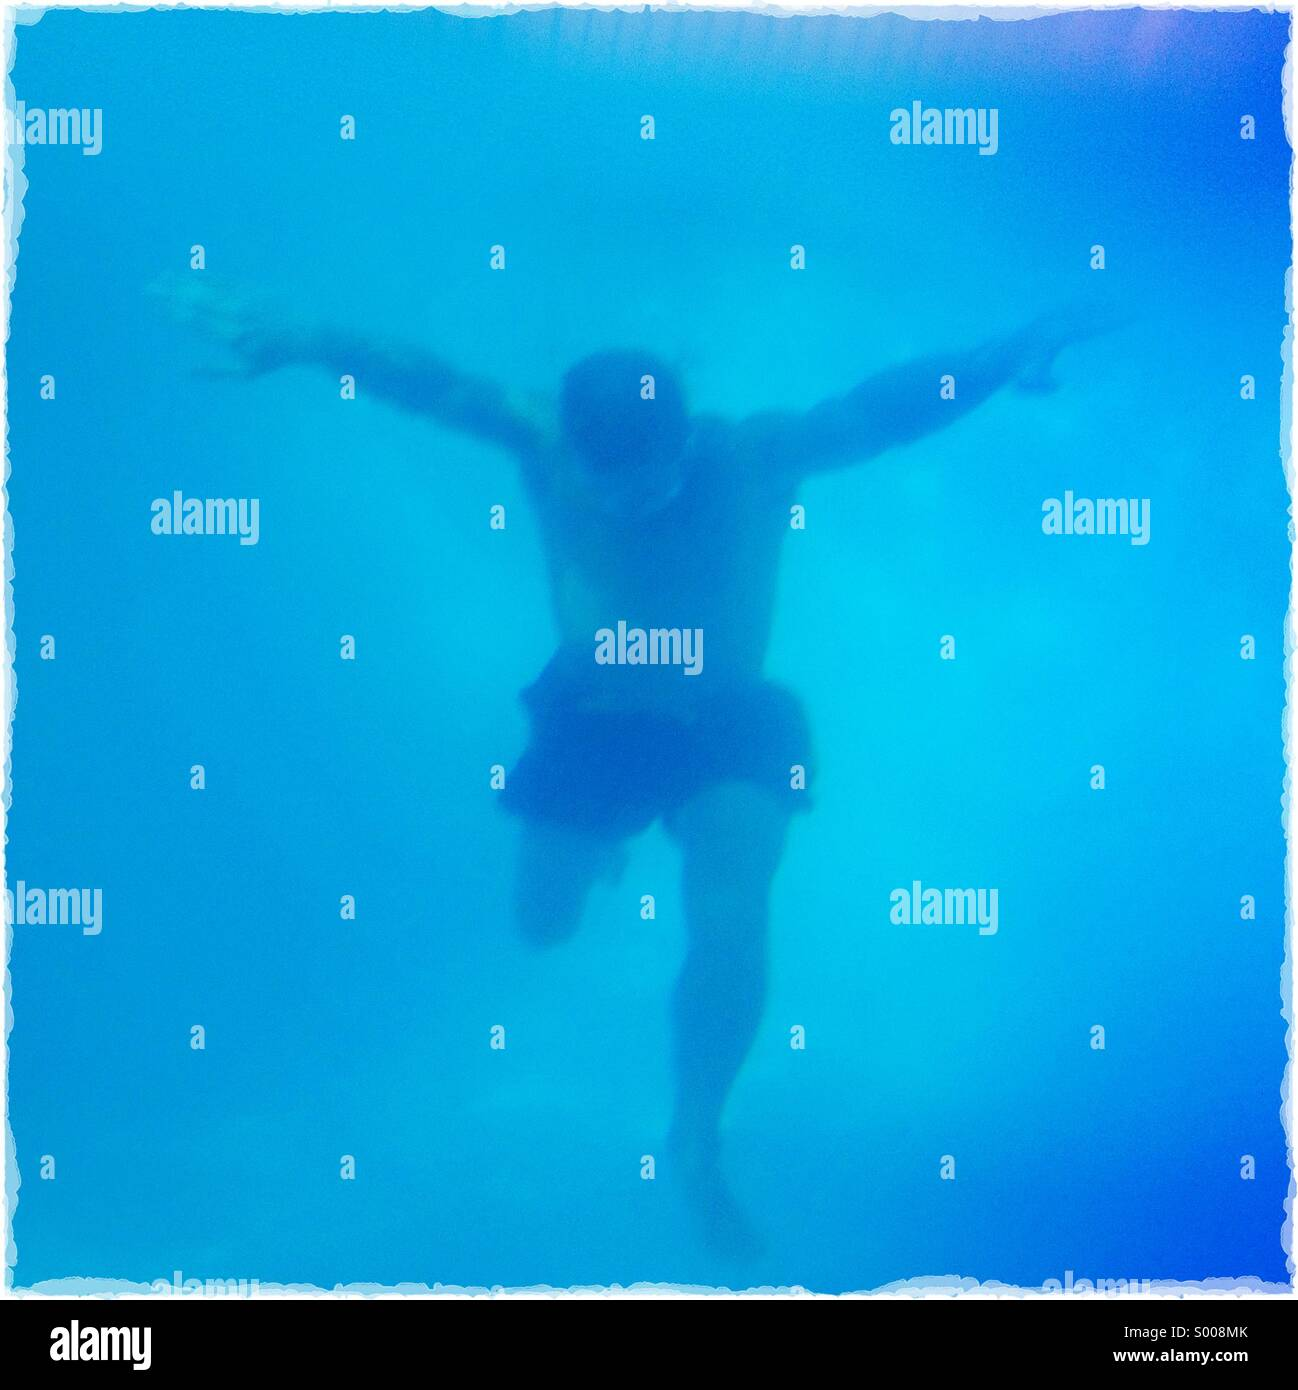 Underwater Shot of a Muscular Man - Stock Image